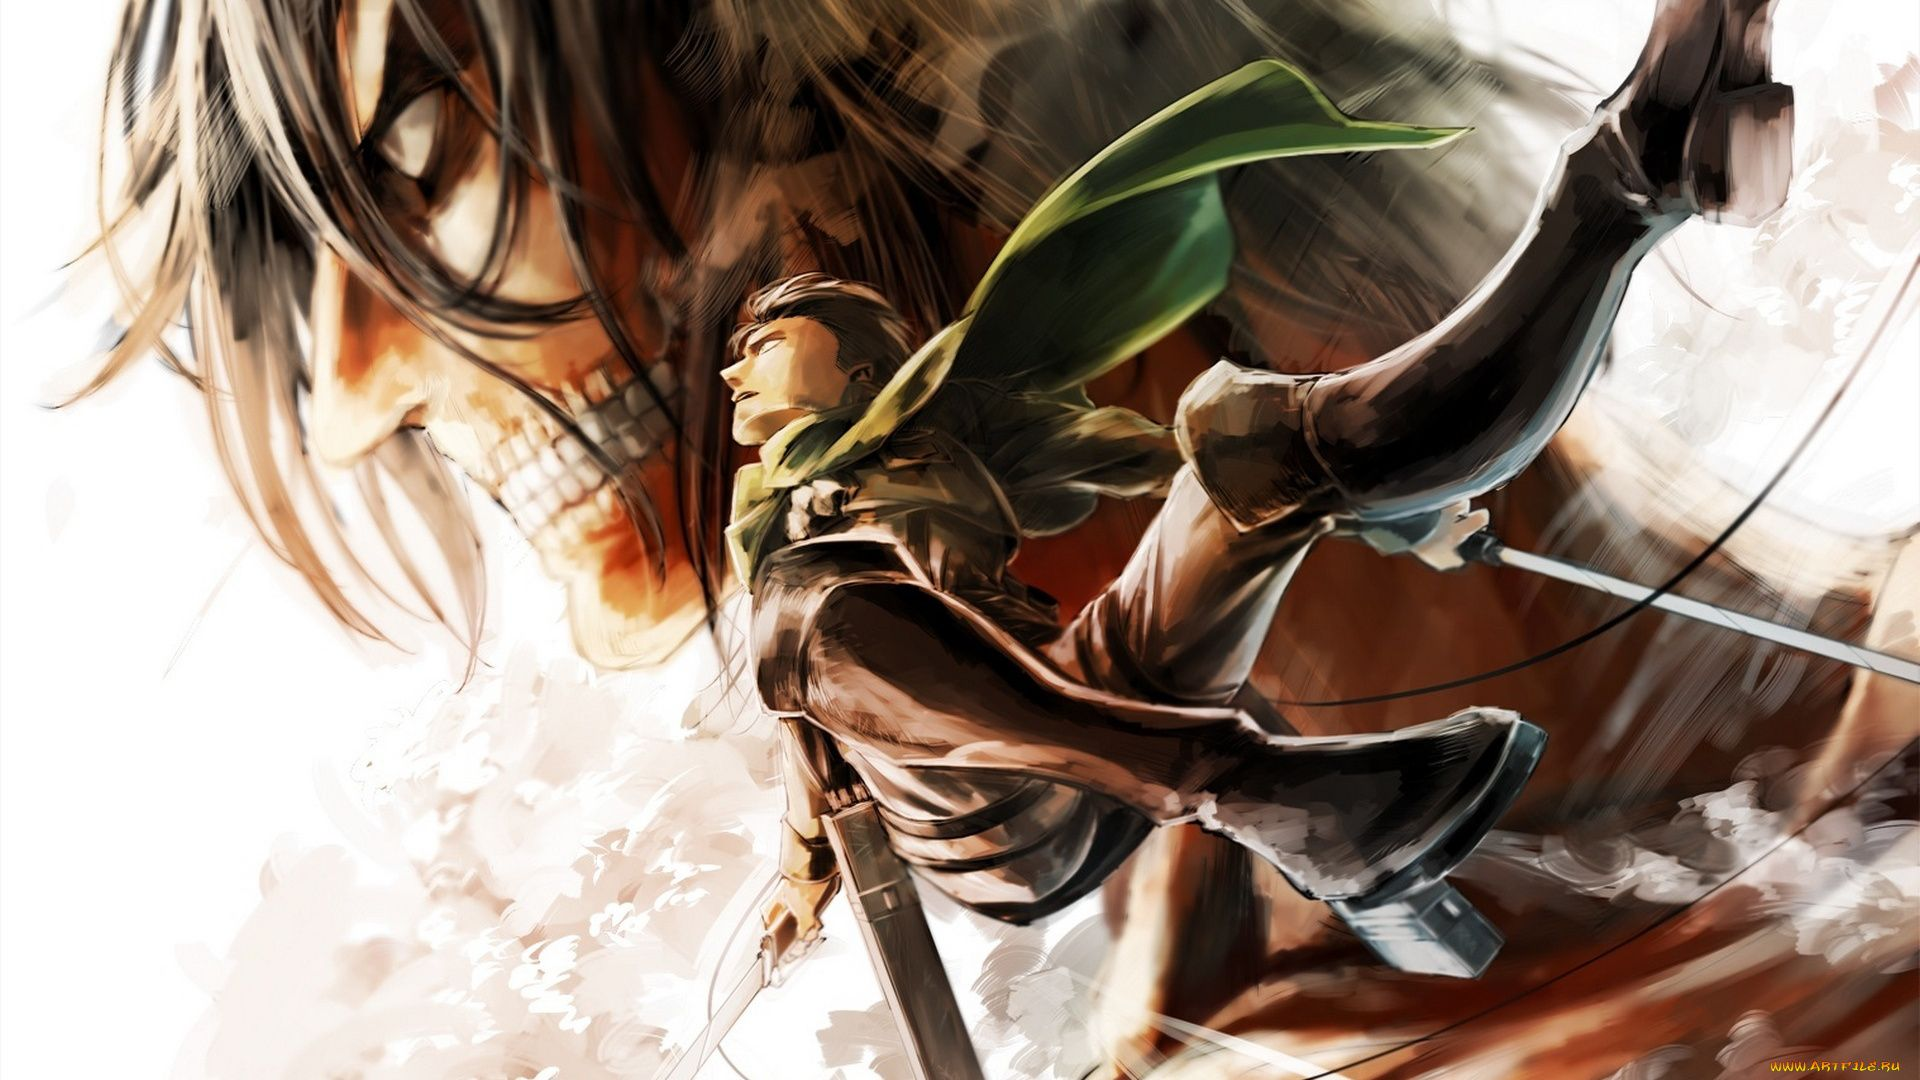 Attack On Titan Wallpaper 1920x1080 Posted By Ryan Mercado